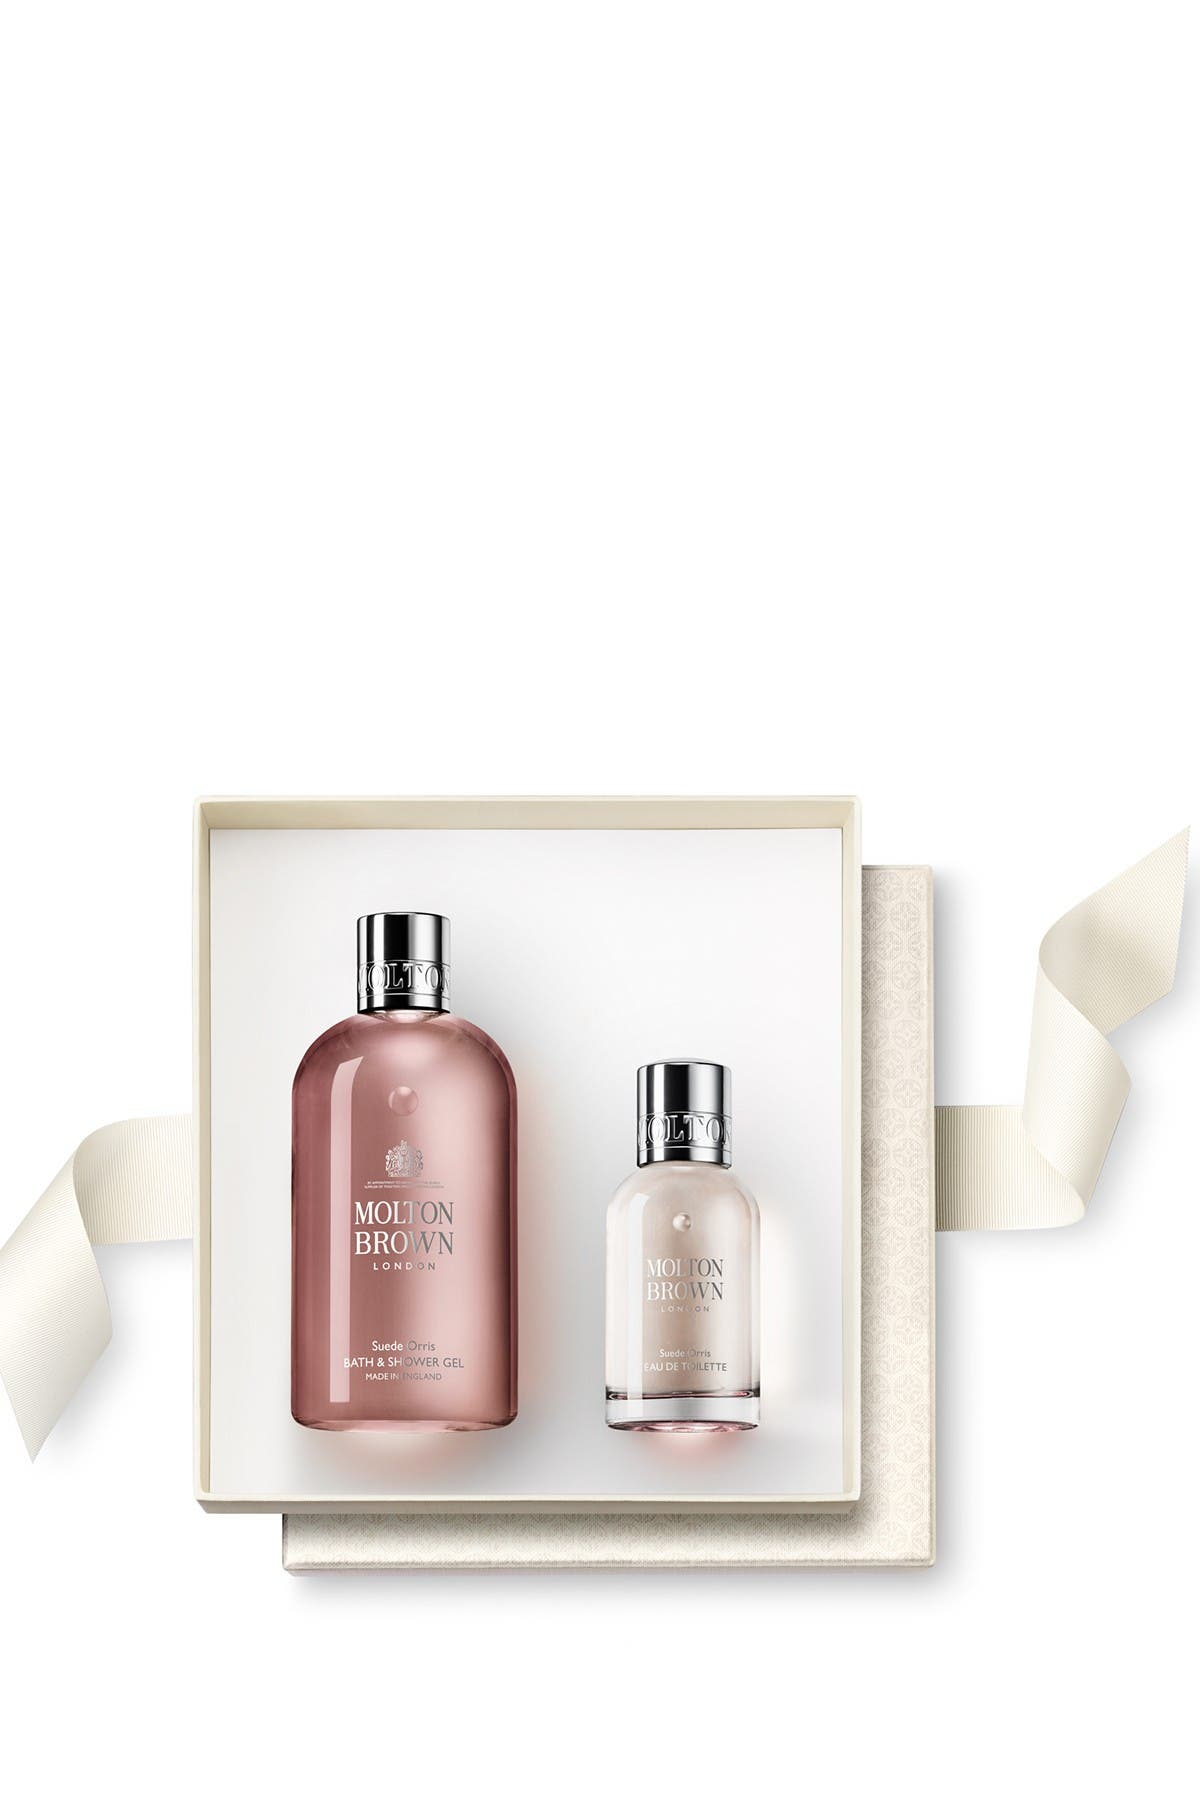 Image of Molton Brown Suede Orris Fragrance Rituals Gift Set